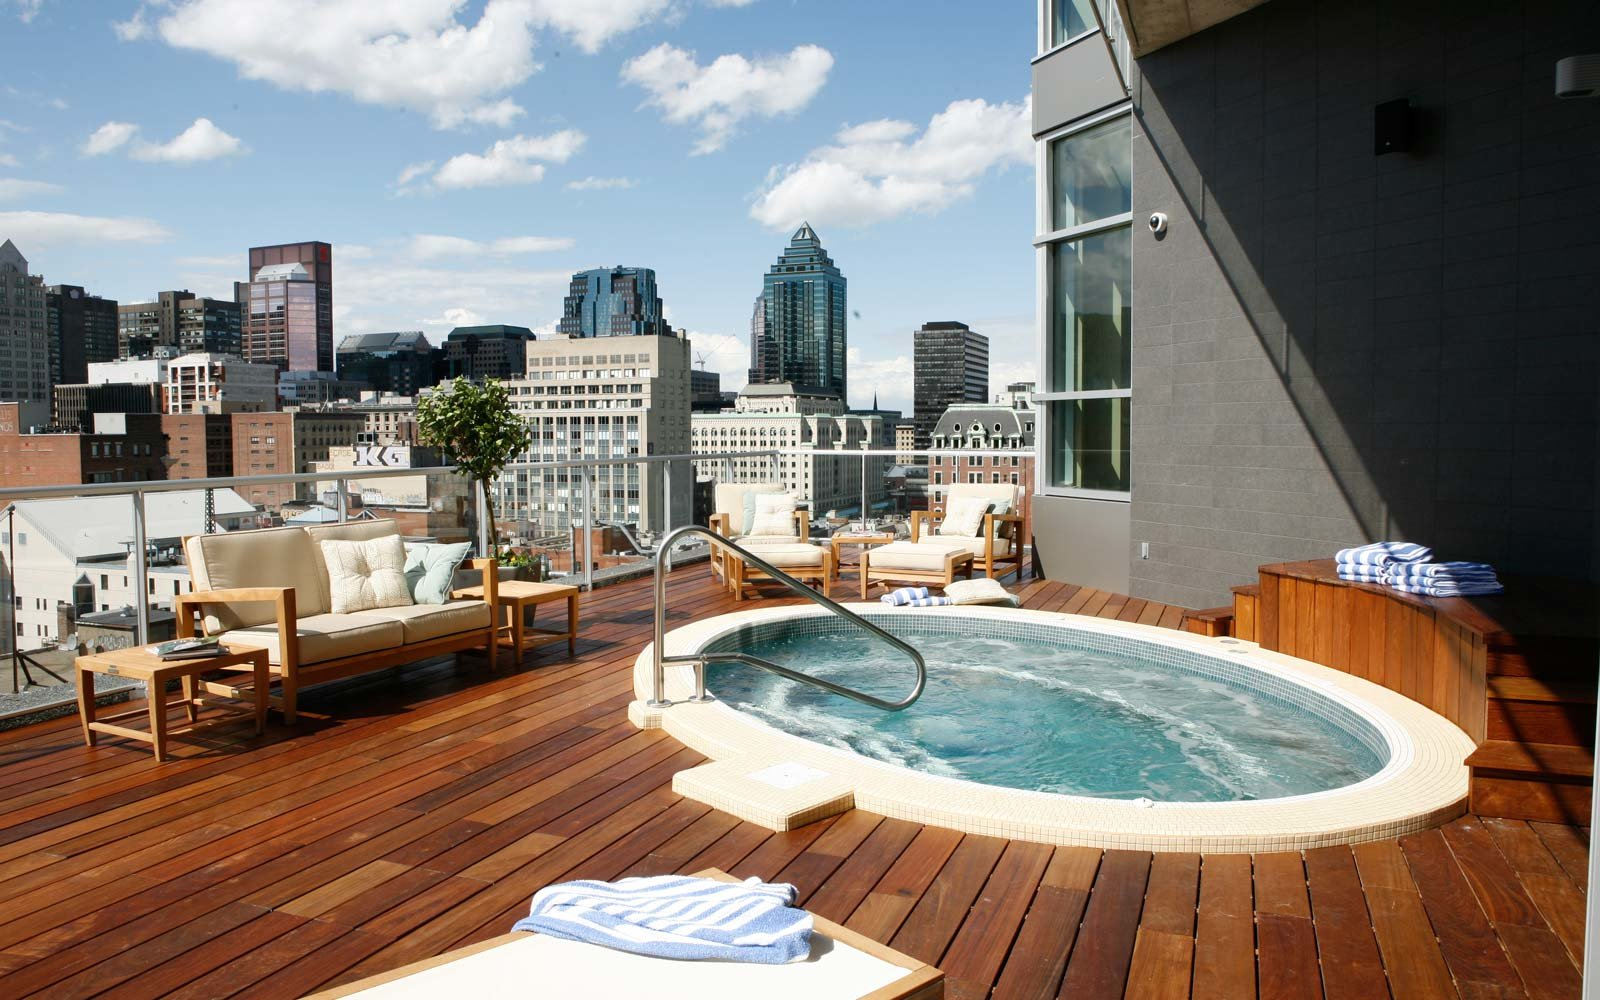 25 Rooftop Pools to Dream About While You Sit in the Office  Travel  Leisure